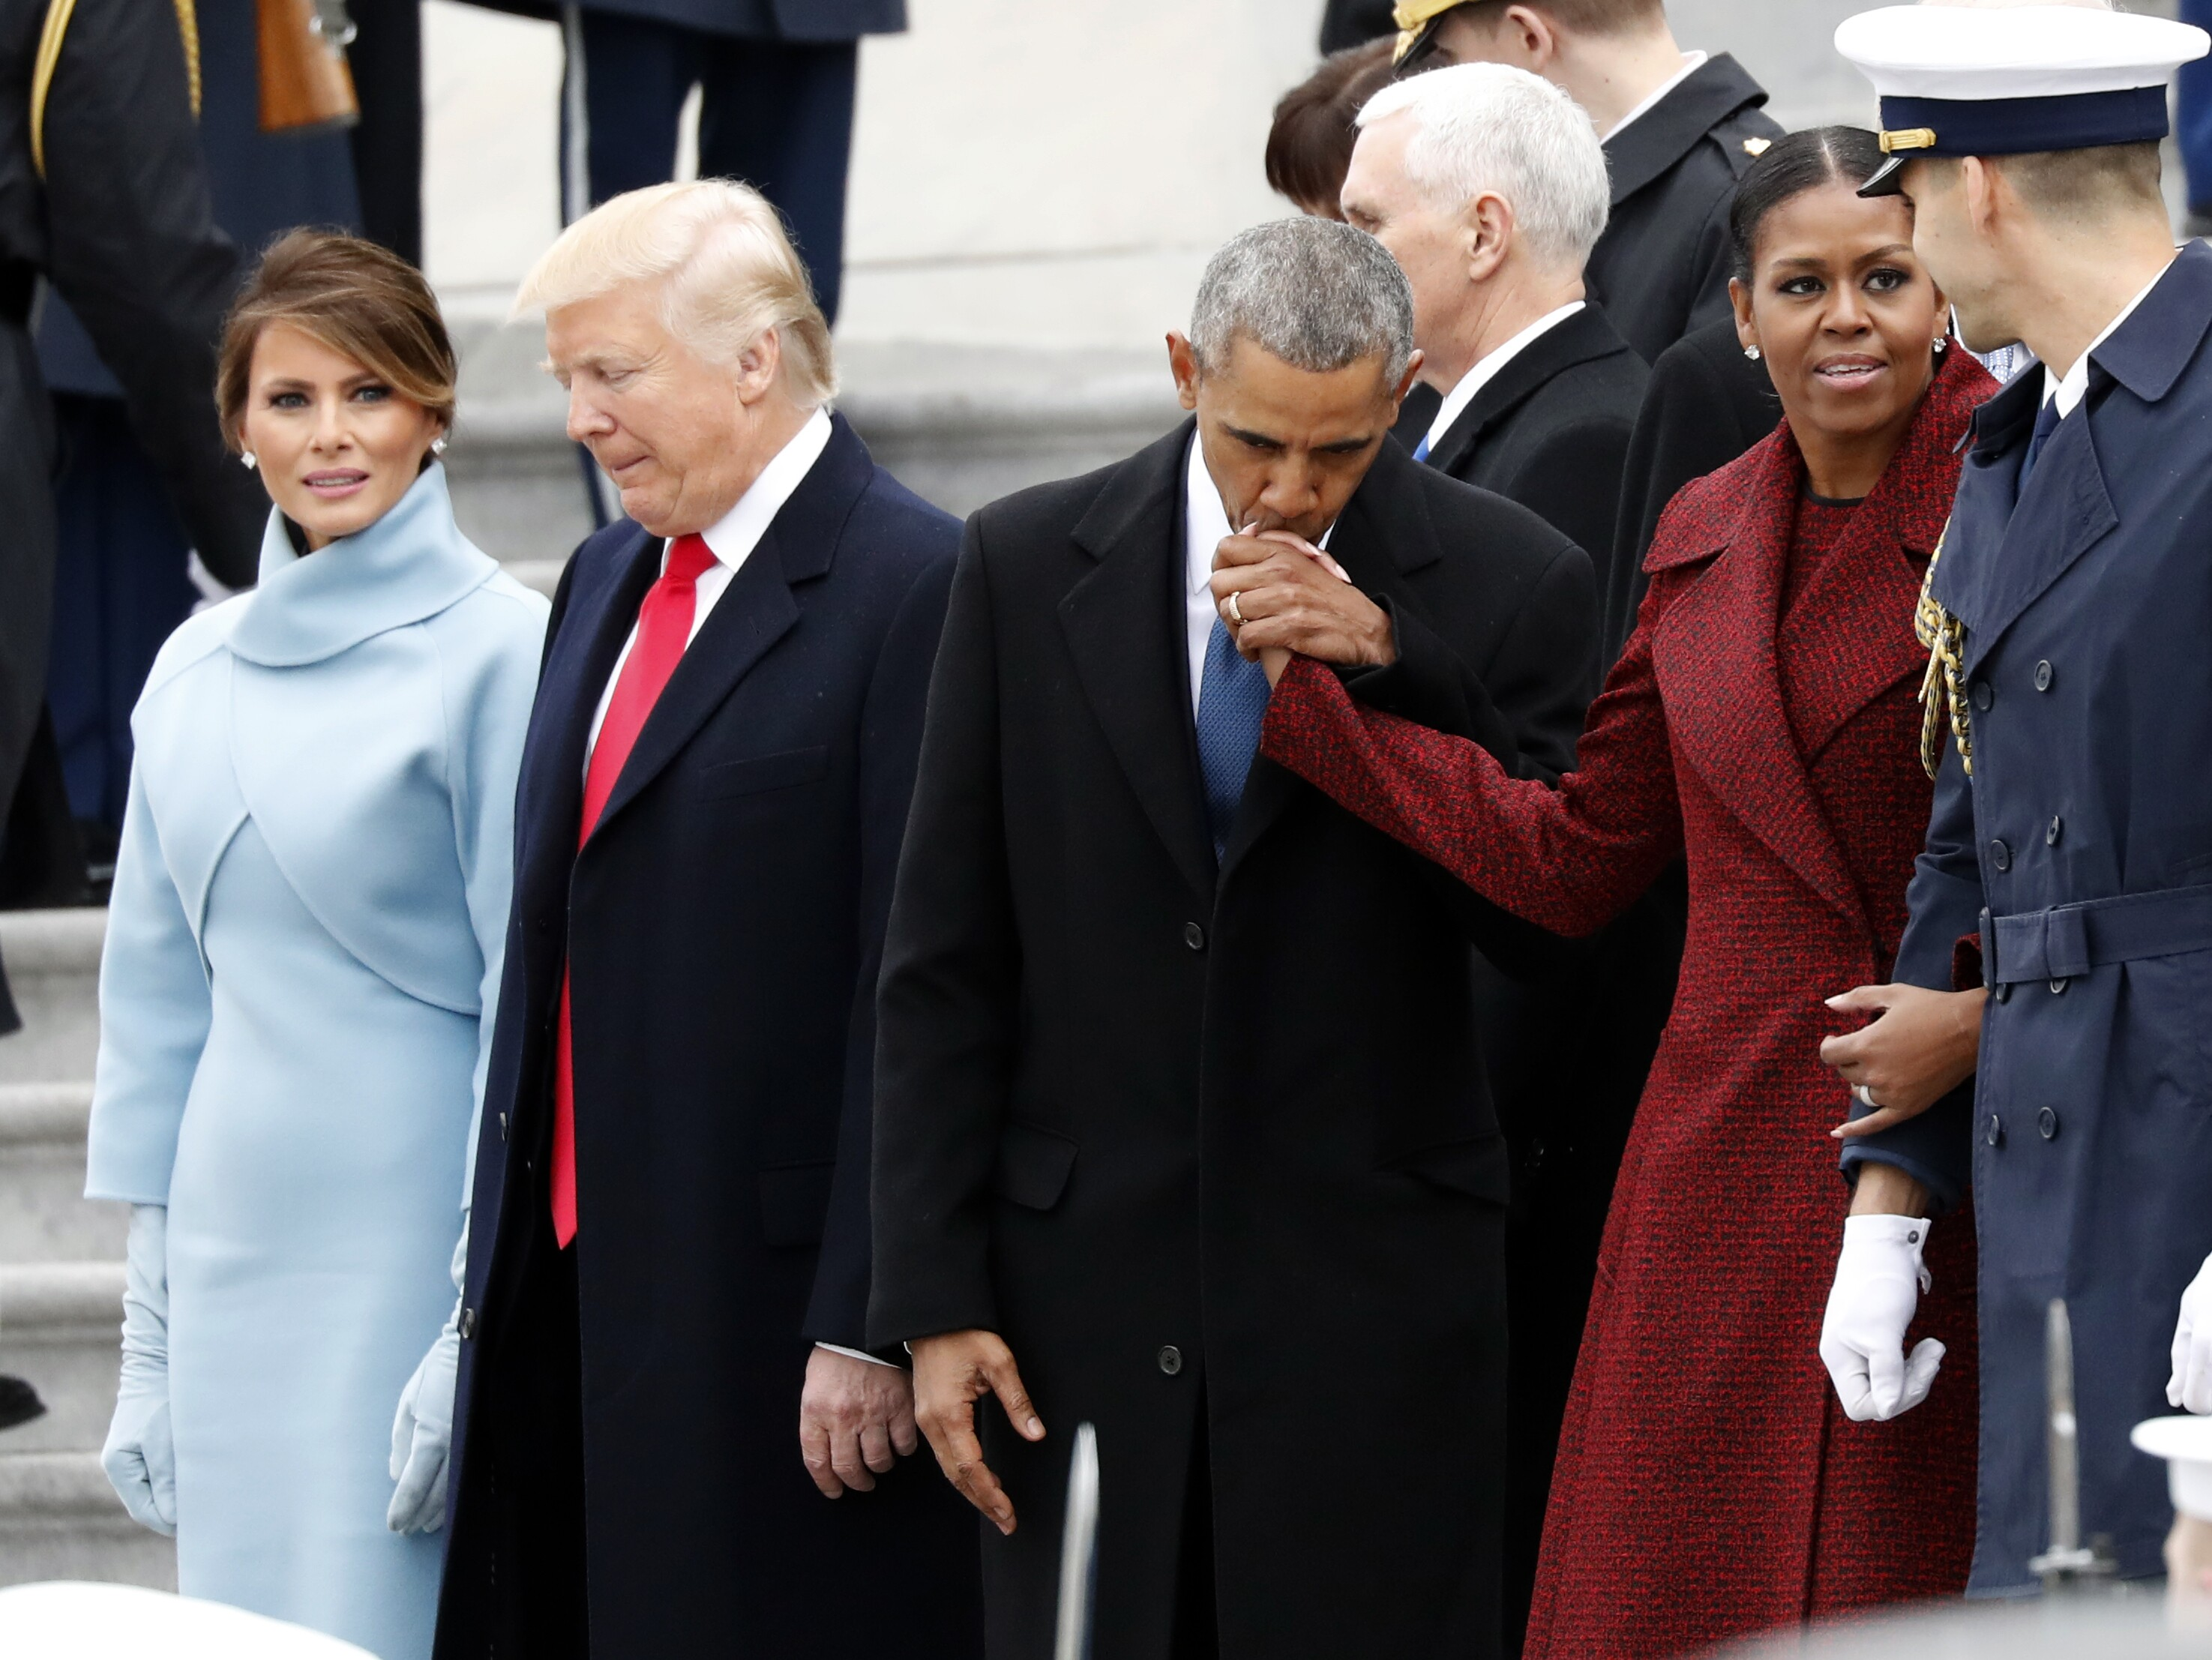 First Lady Melania Trump Stands With President Donald As Former Barack Obama Kisses The Hand Of His Wife Michelle During A Departure